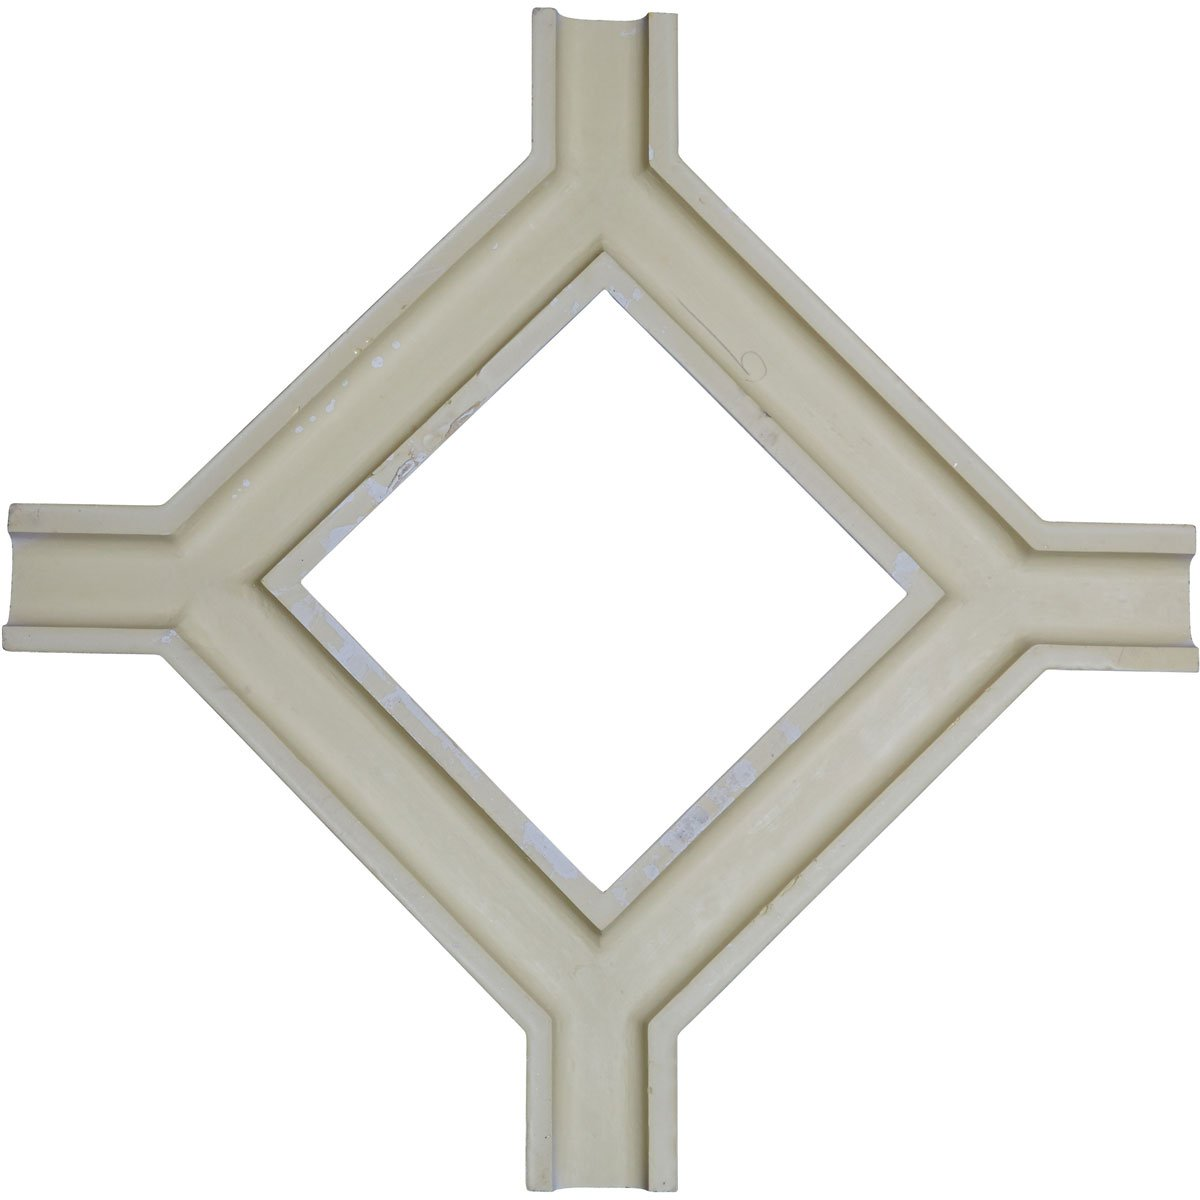 Ekena Millwork CC05ICI02X36X36TR 36W x 2P x 36L Inner Circle Intersection for 5 Traditional Coffered Ceiling System